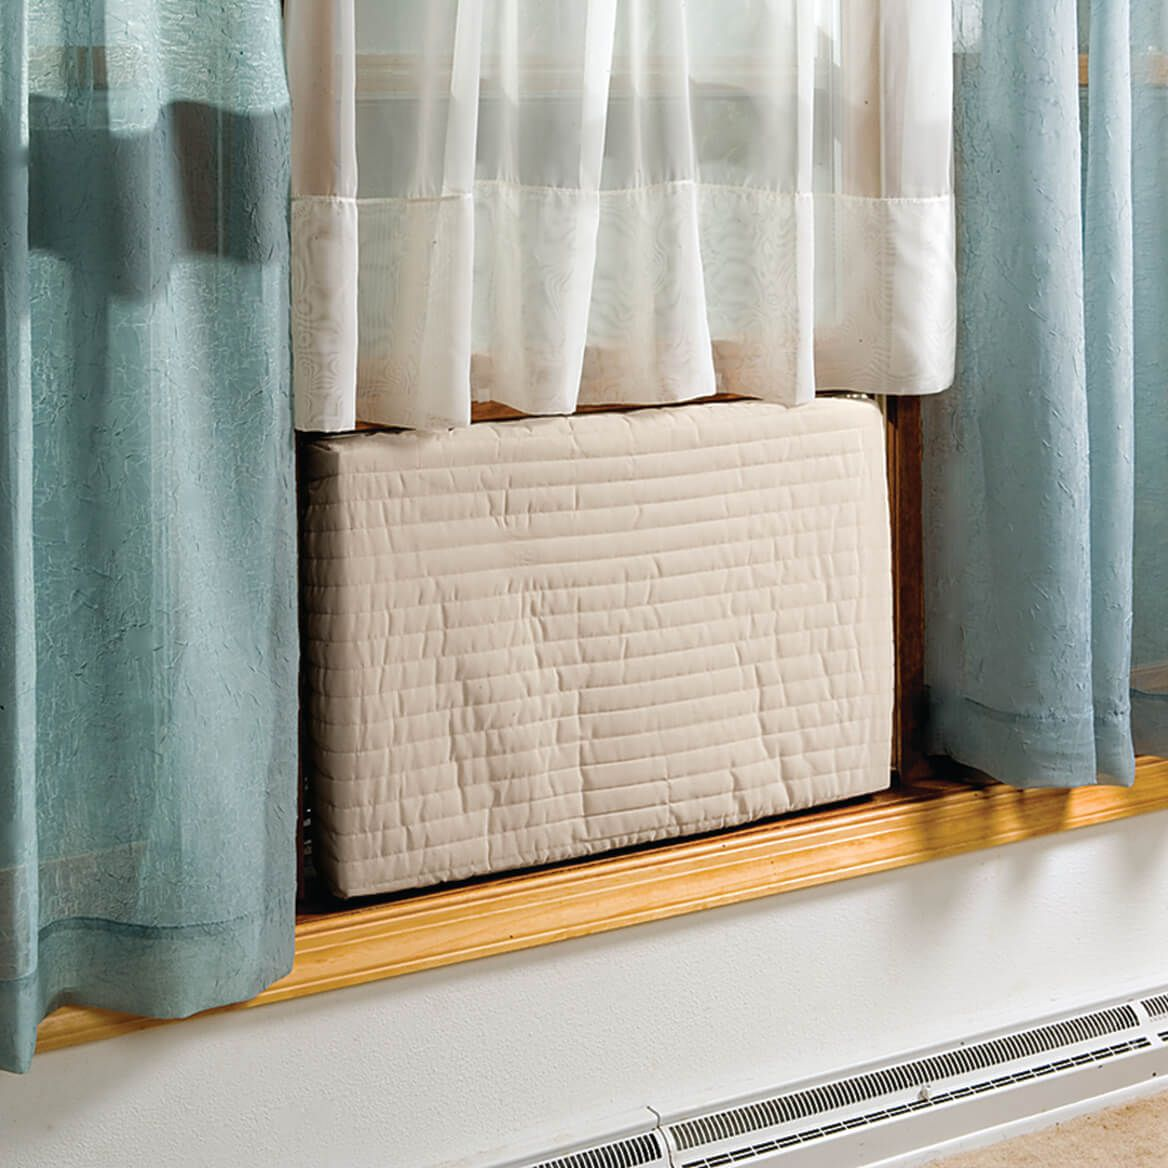 Air Conditioners Are An Energy Wasting Hole In The Wall Block It With The Indoor Air Conditioner Cover Air Conditioner Cover Indoor Air Conditioner Indoor Air